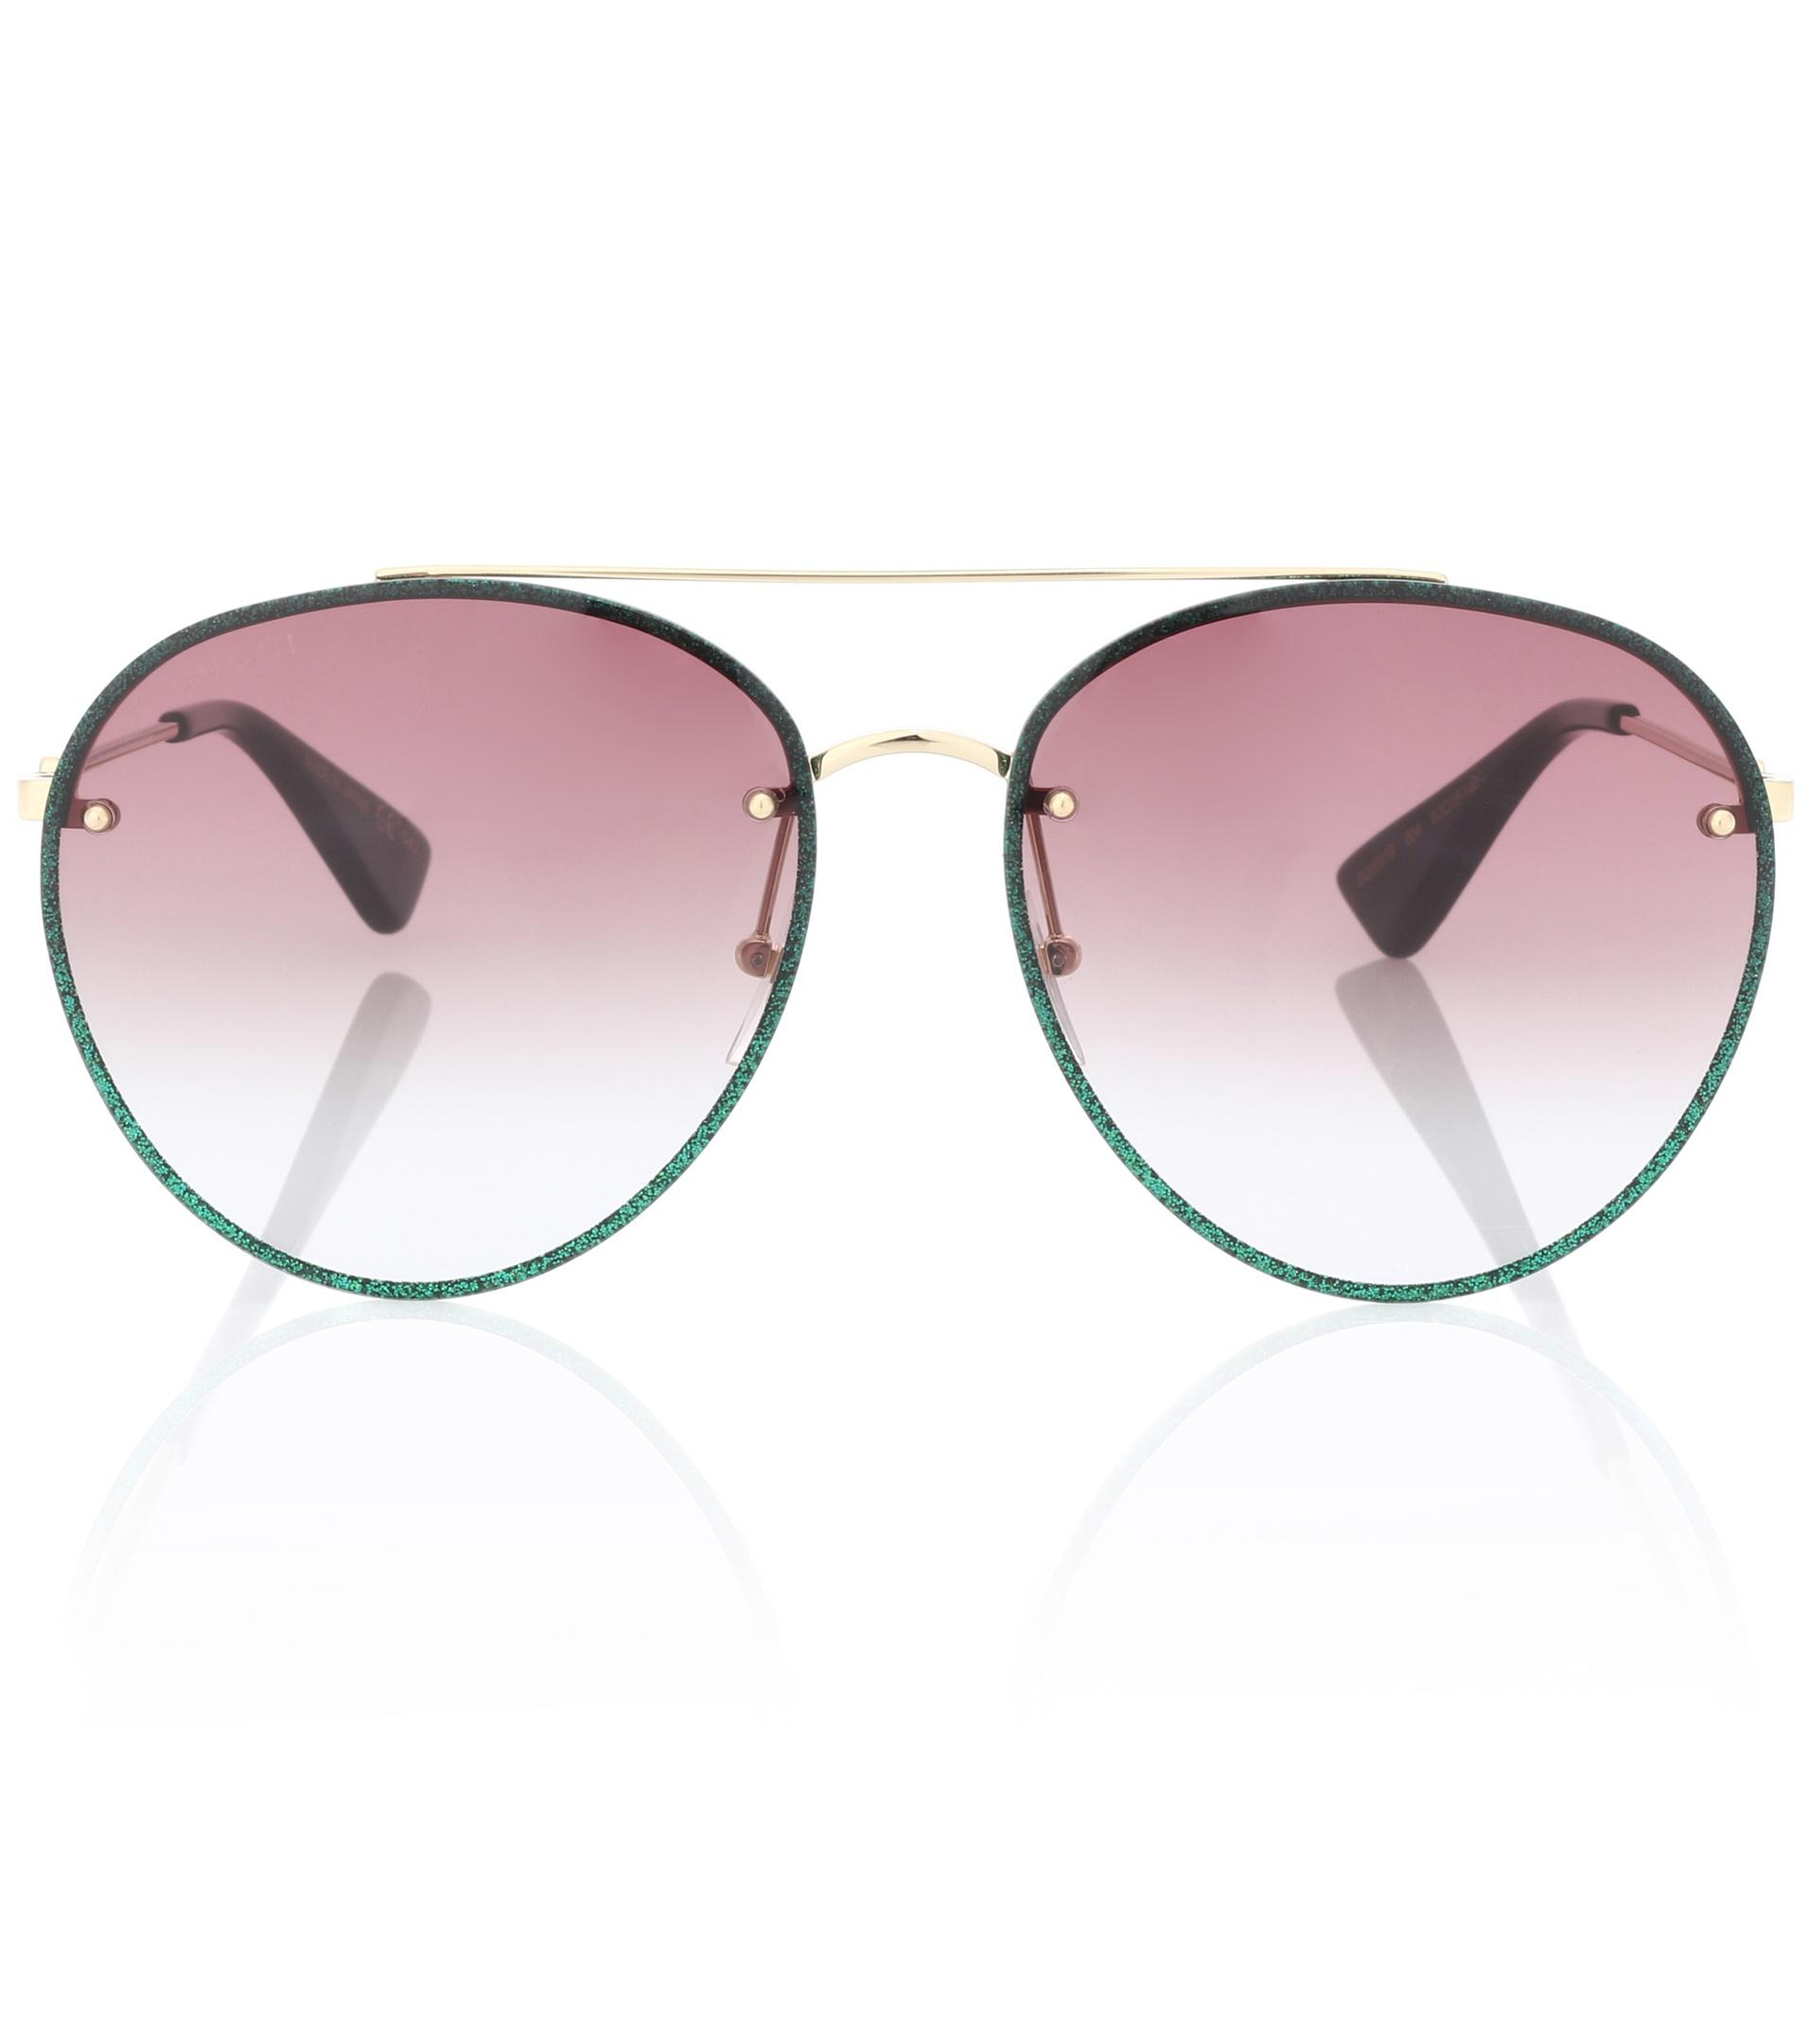 30348b1fbbb Gucci Glitter Aviator Sunglasses in Green - Lyst